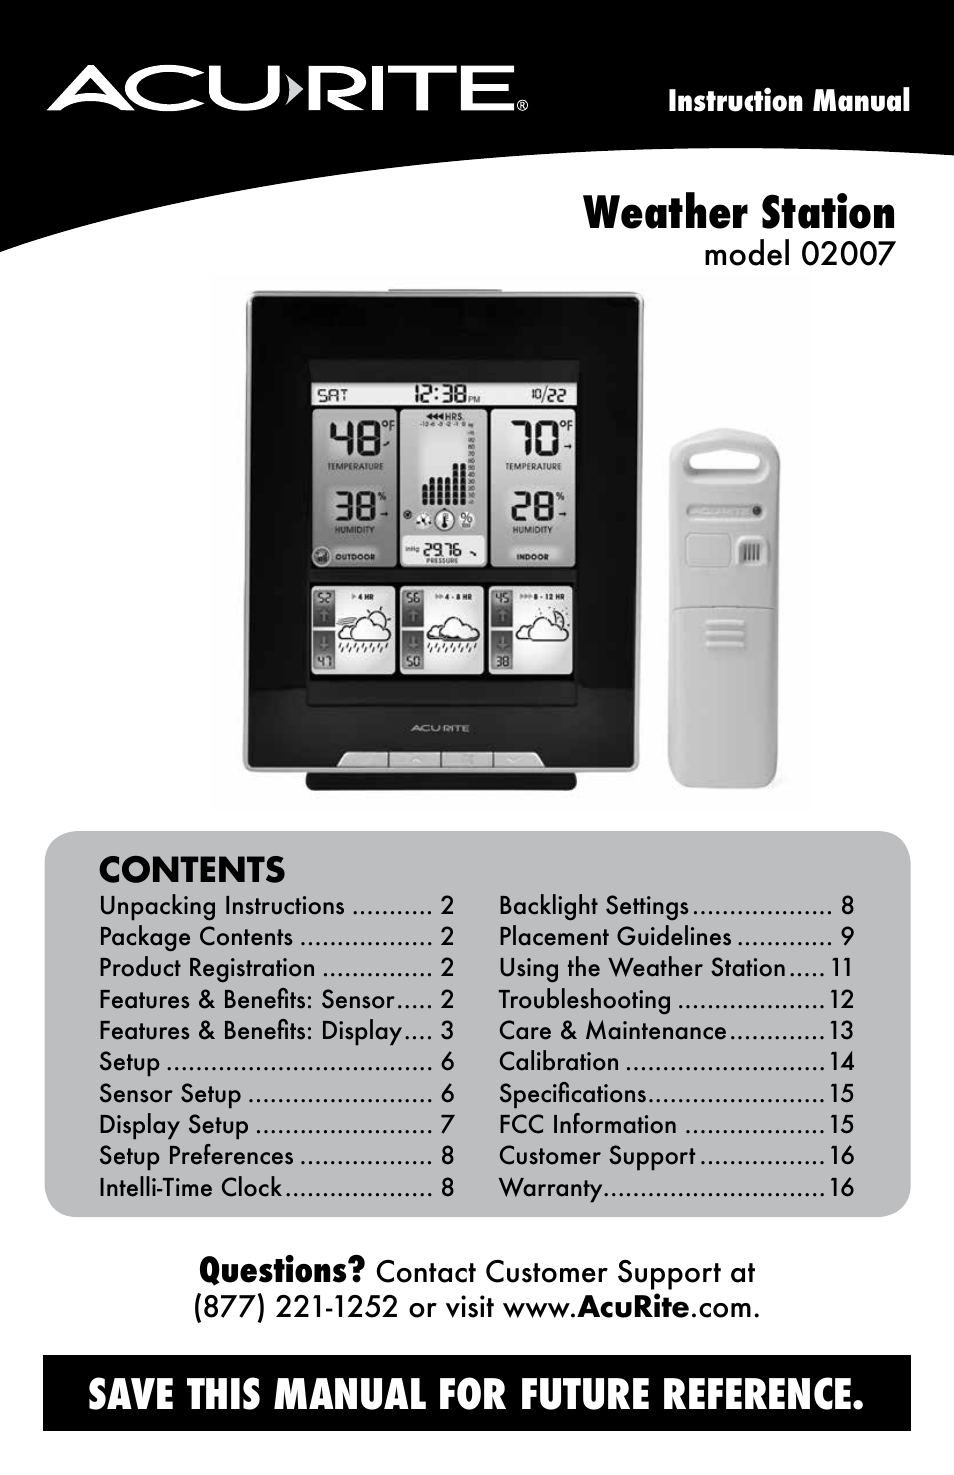 Acurite 02007 Weather Station User Manual Manual Guide